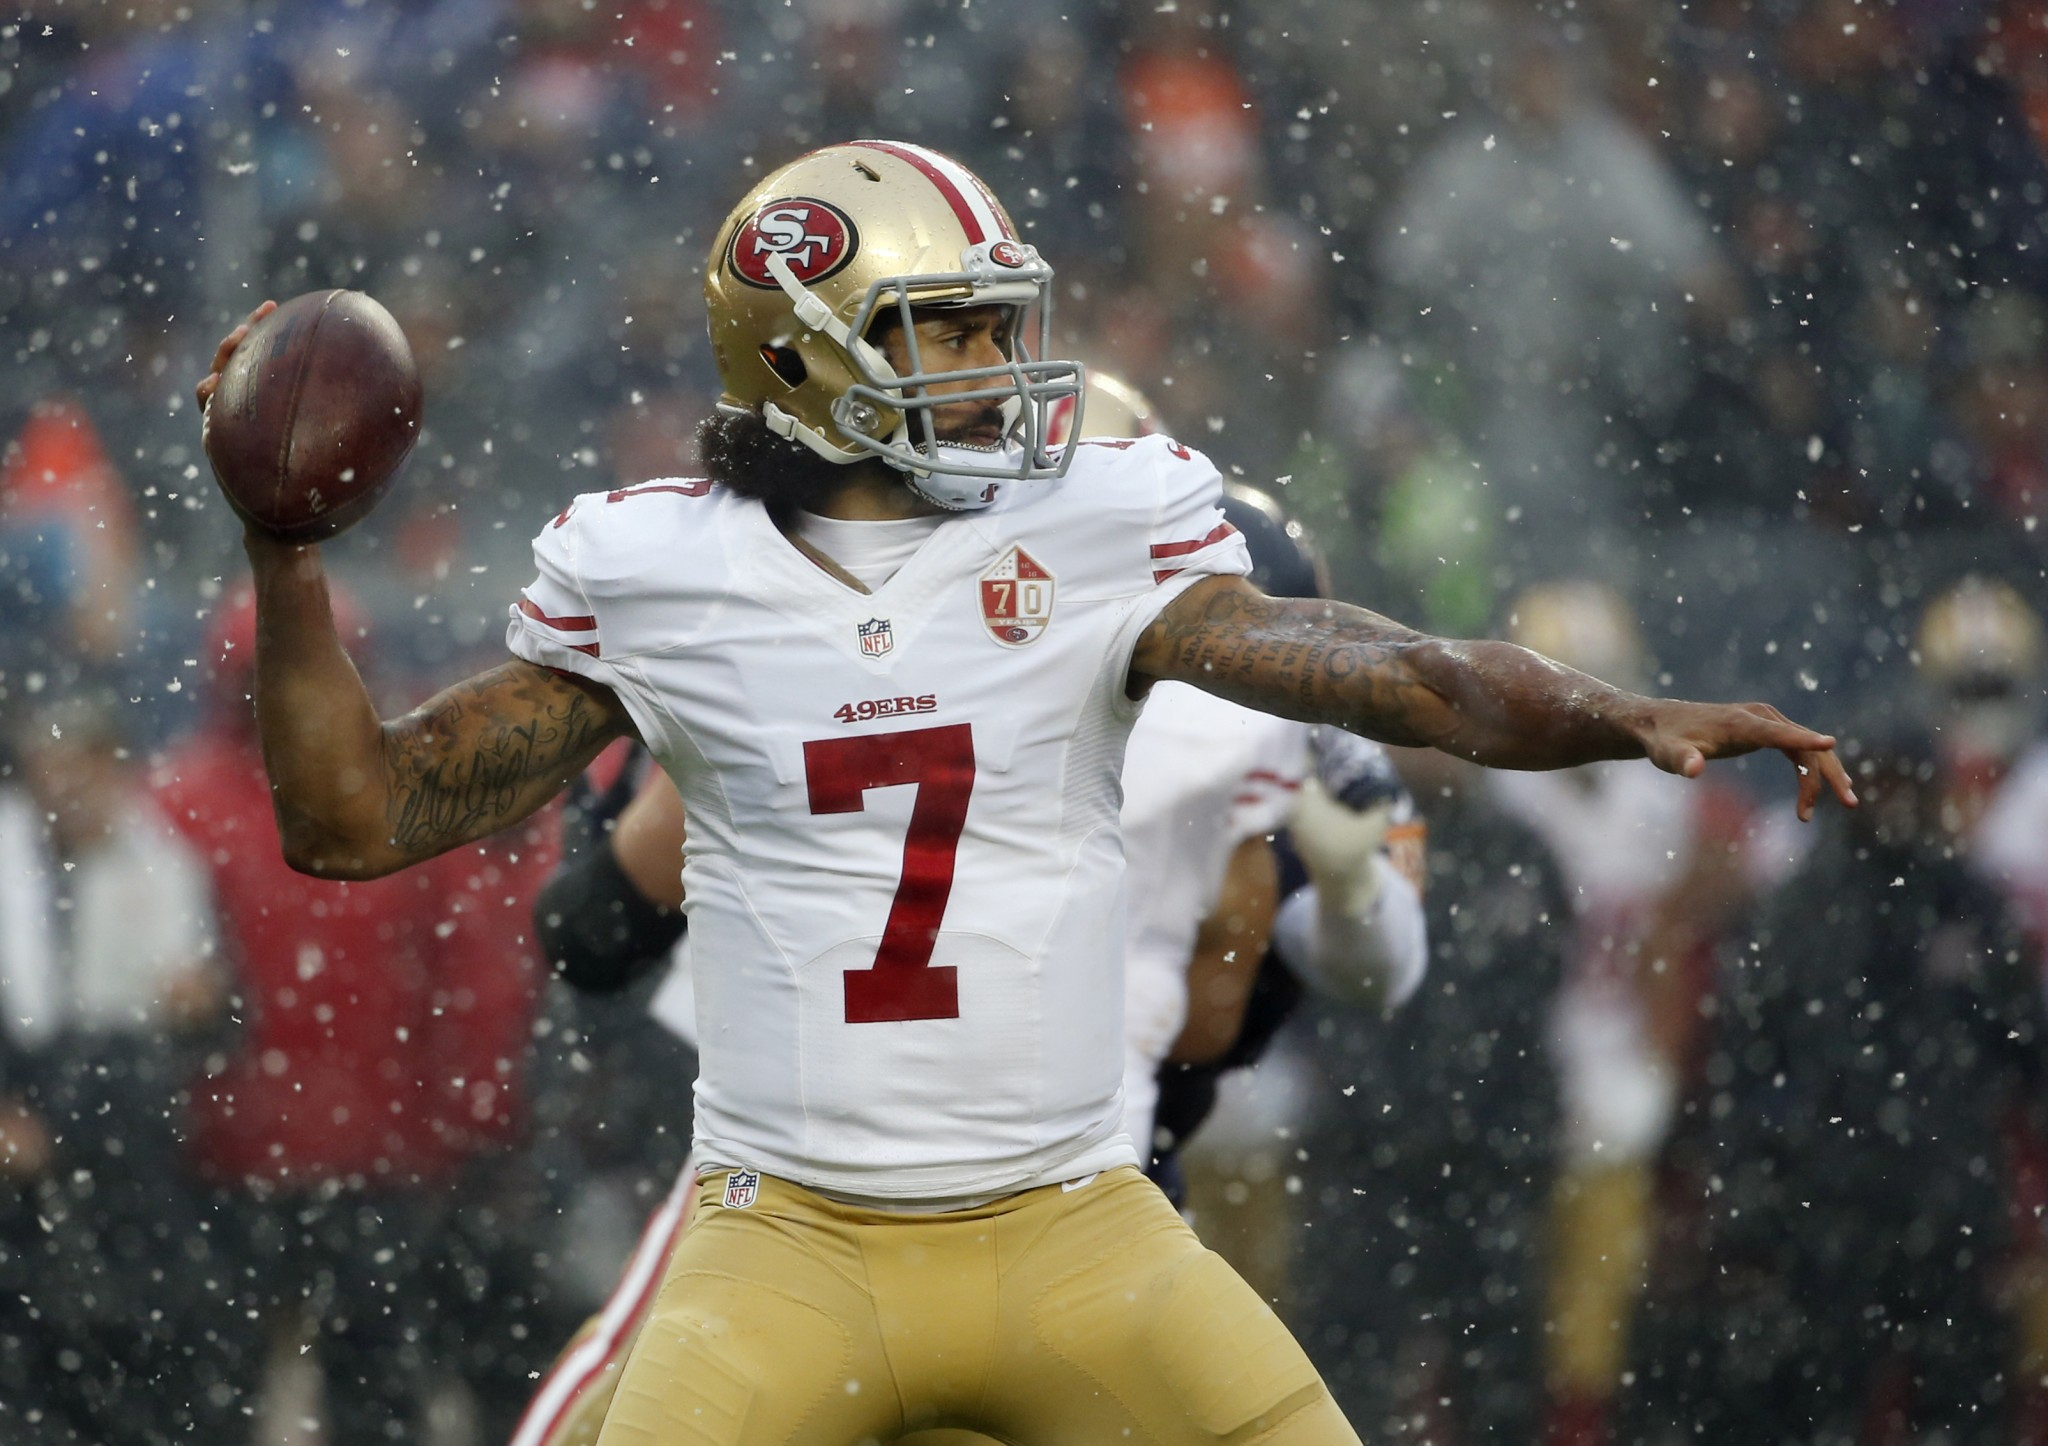 Colin Kaepernick benched at snowy Soldier Field, replaced by Bl…